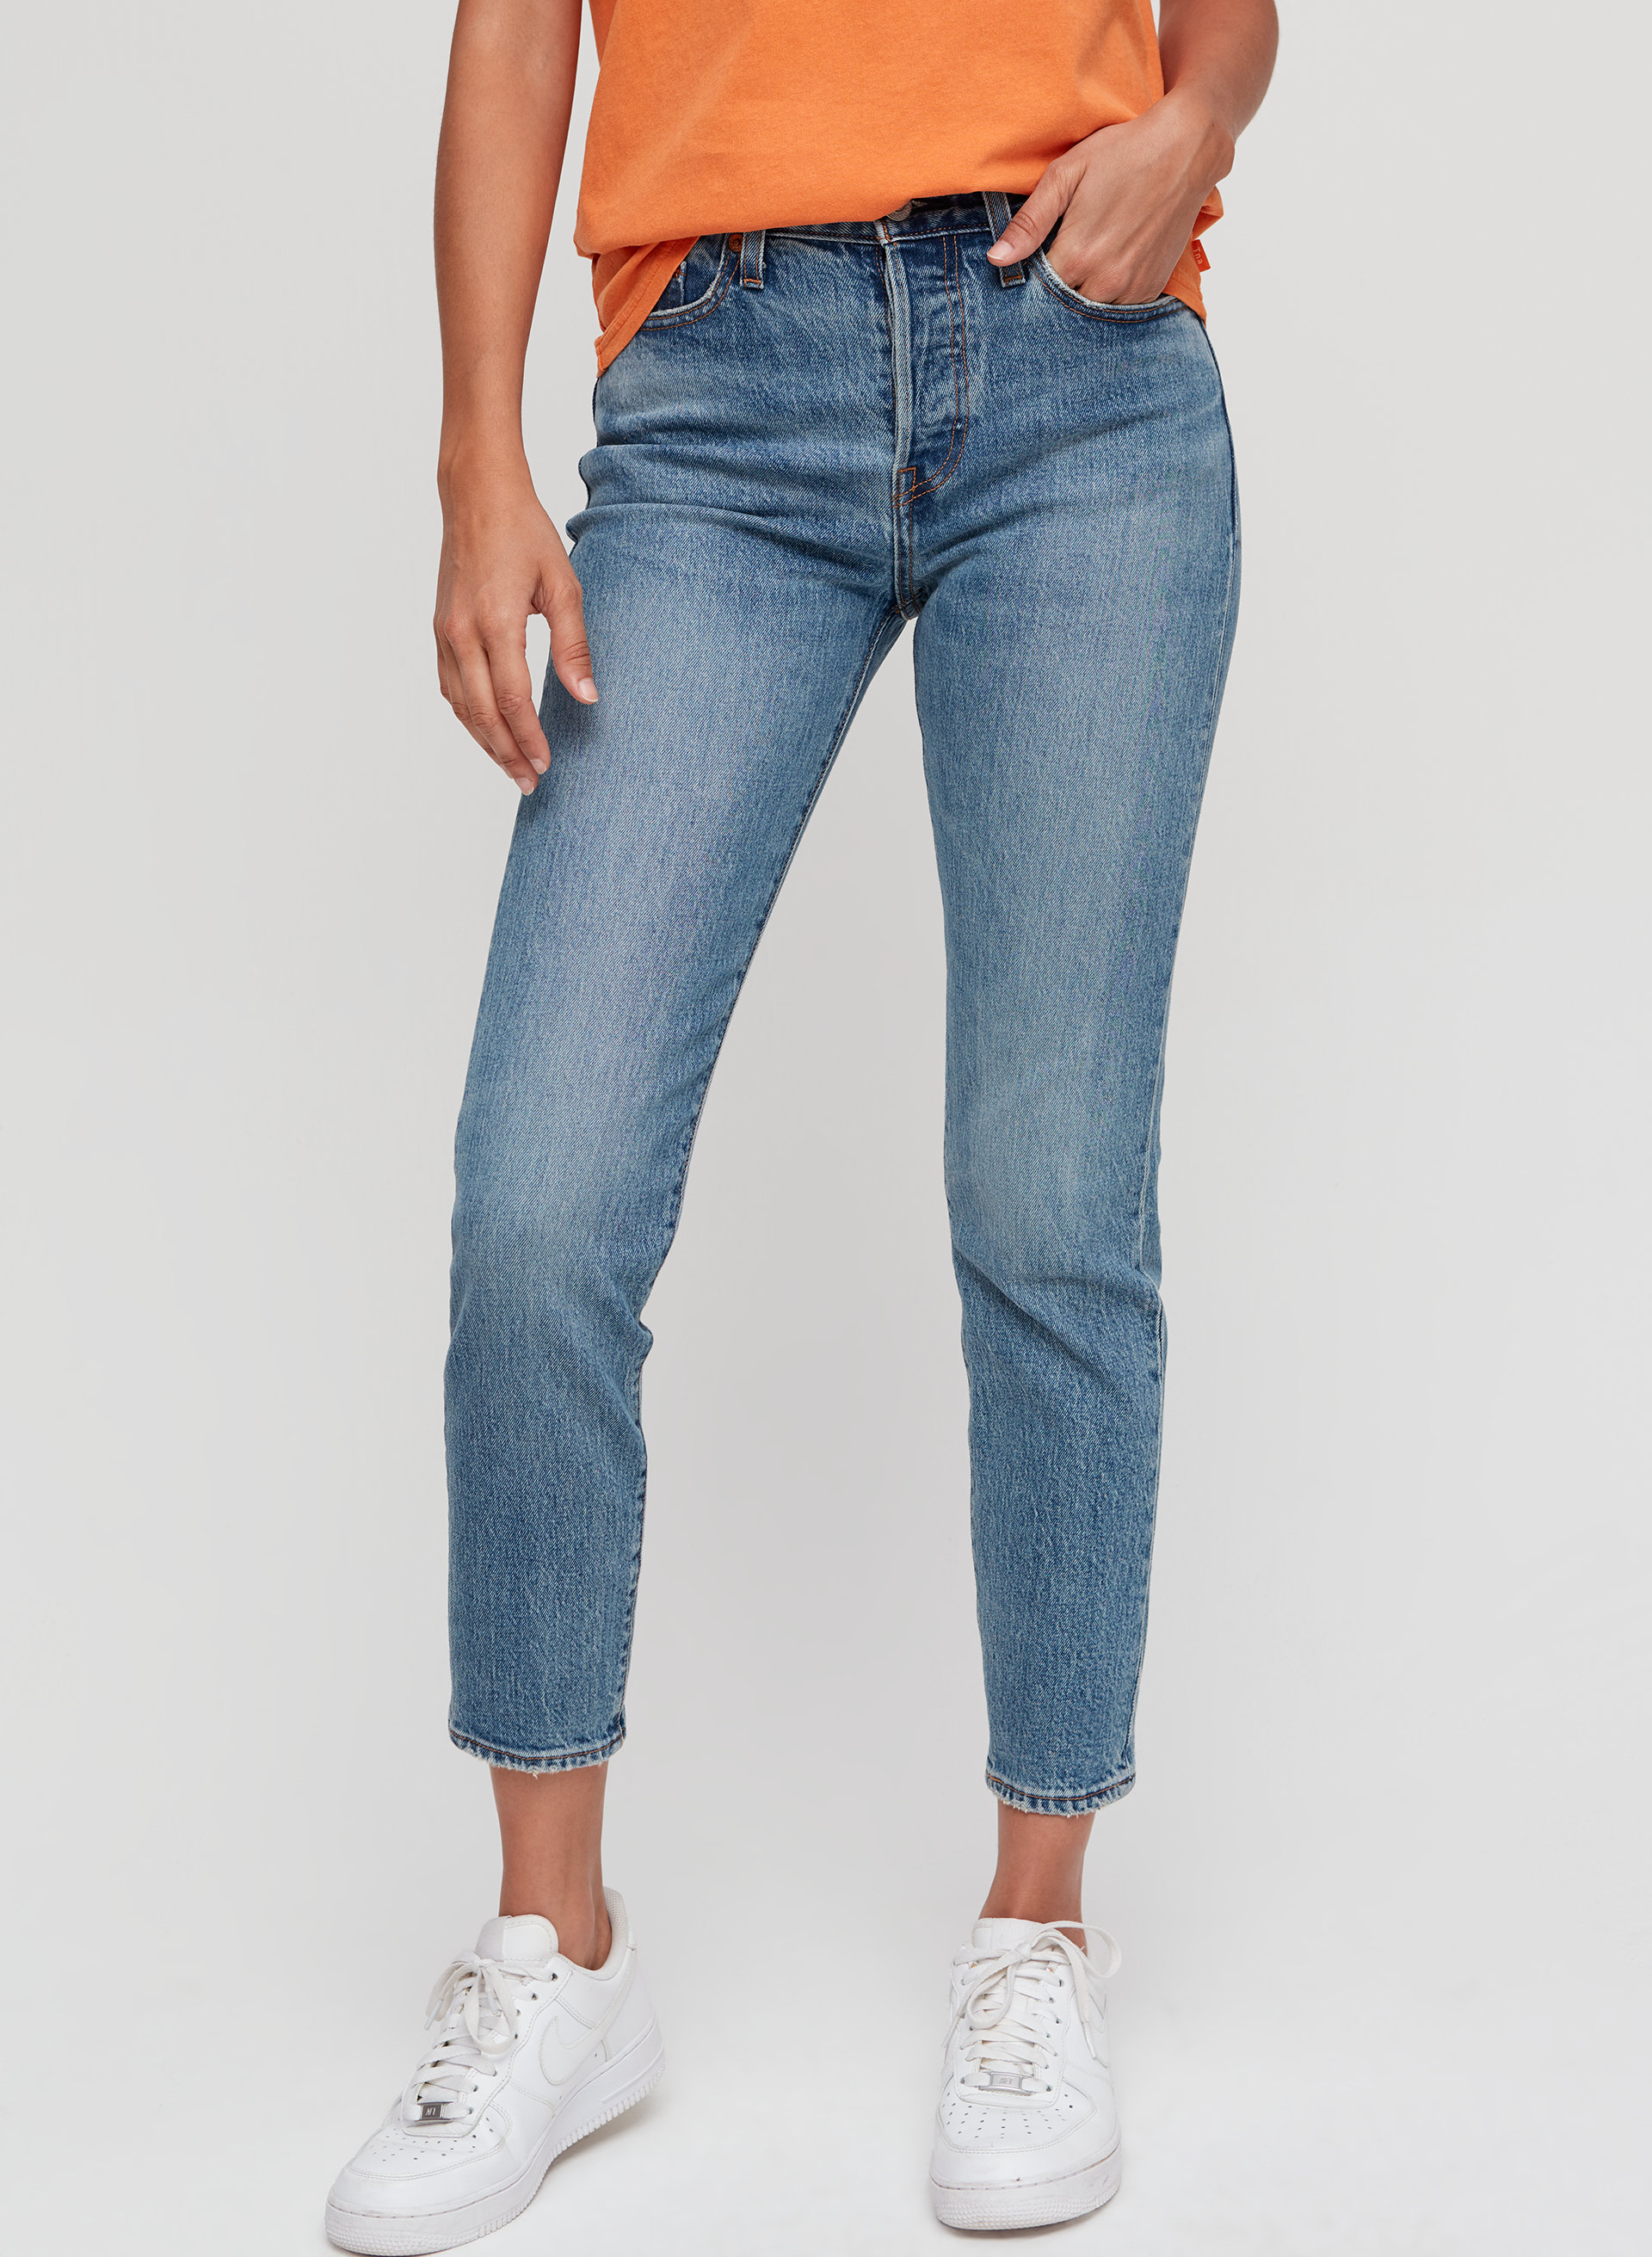 fd8529a5 High-waisted, skinny jean. Levi's WEDGIE ICON | Aritzia; Levi's WEDGIE ICON  | Aritzia ...